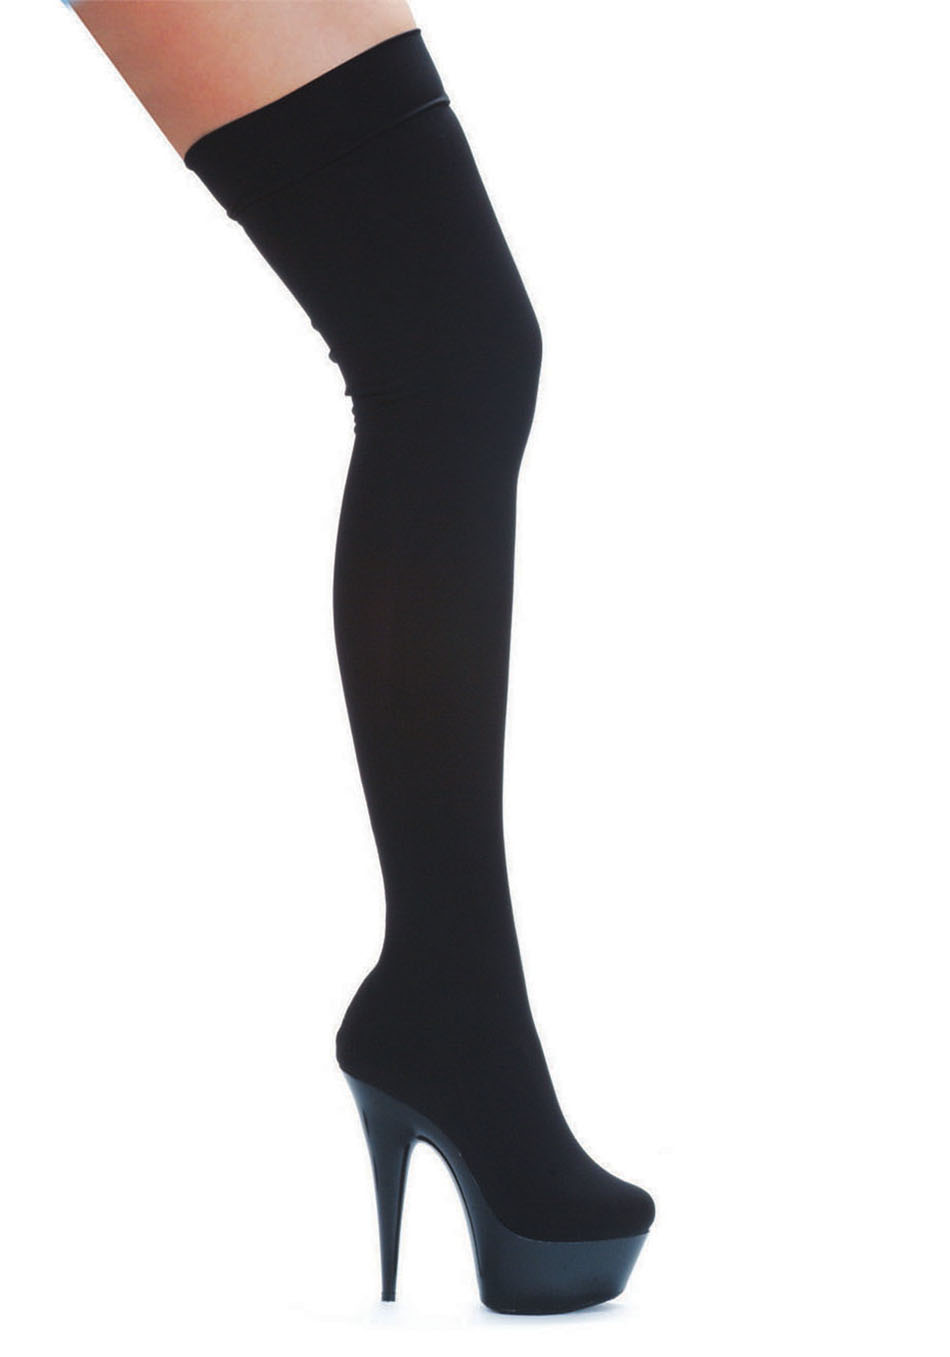 Women's 6 Inch Pointed Stiletto Stretch Lycra Thigh High Boot